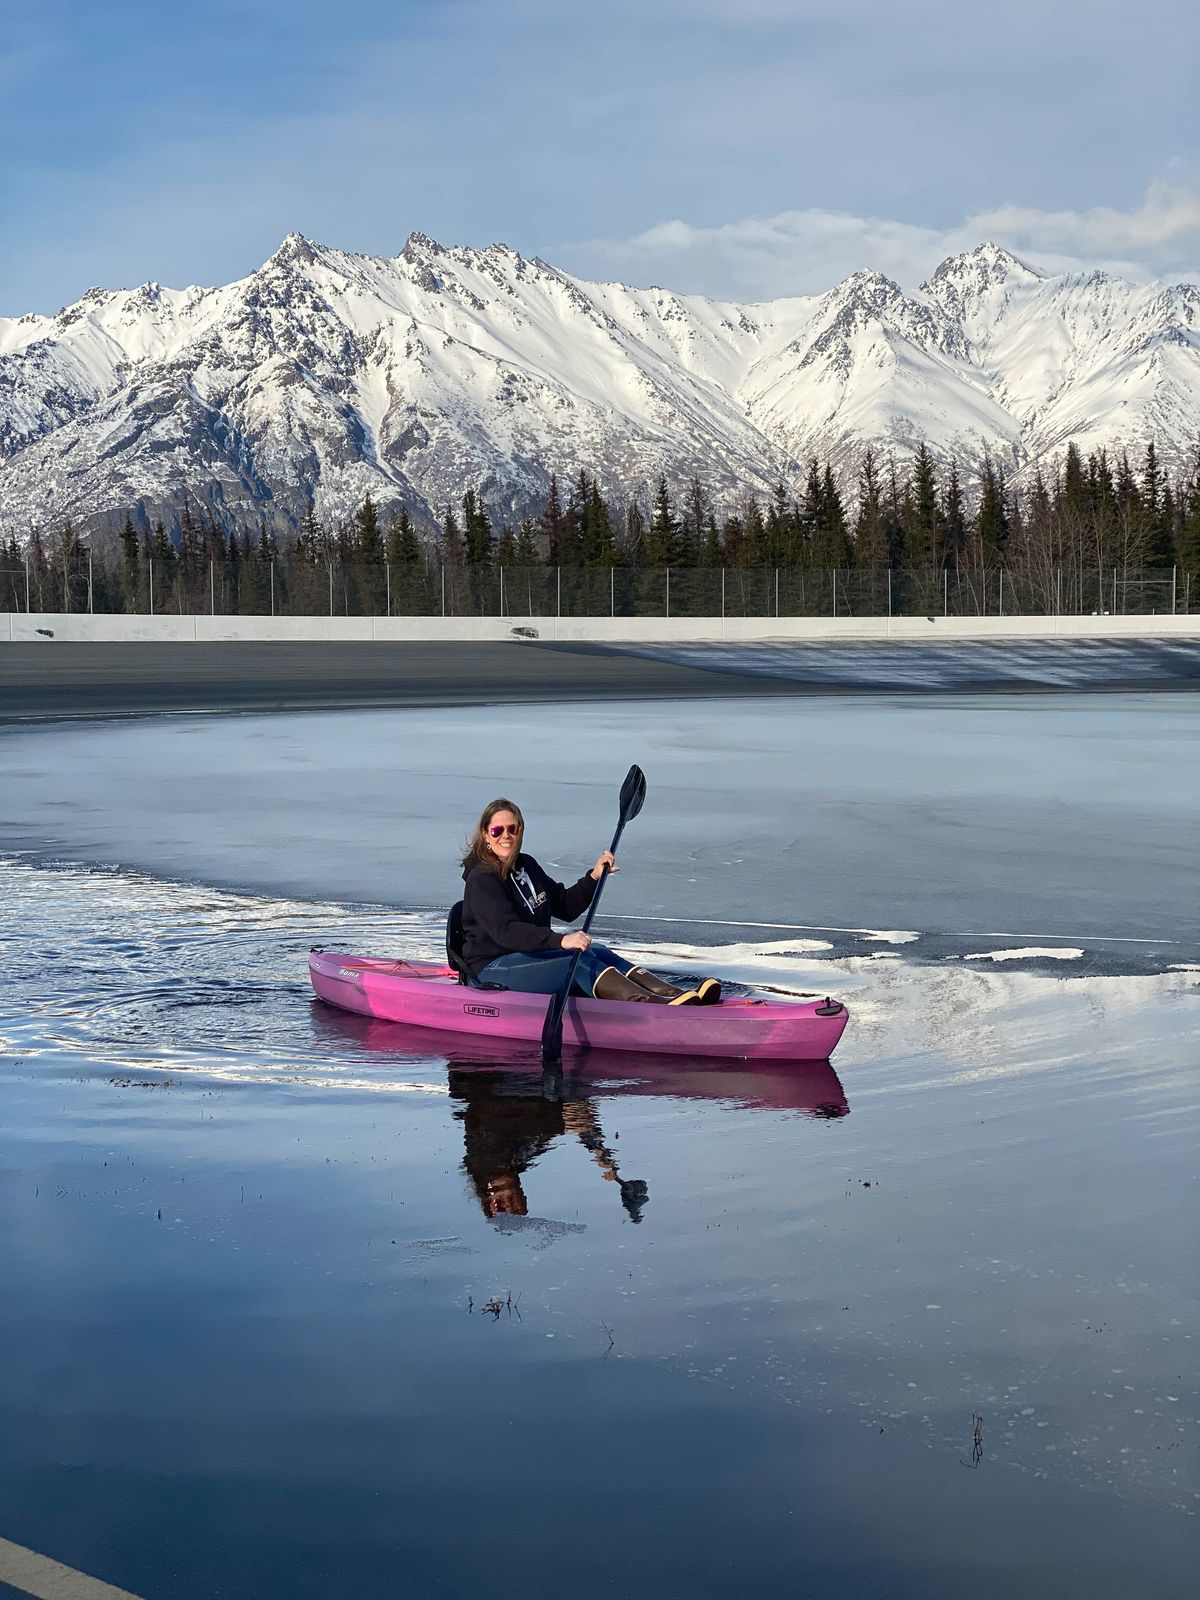 Alaska Raceway Park owner Michelle Lackey Maynor kayaks across track's infield last month after snow melted at the Palmer track. The water is gone and the track is ready for season-opening races Sunday. (Photo by Don Maynor)